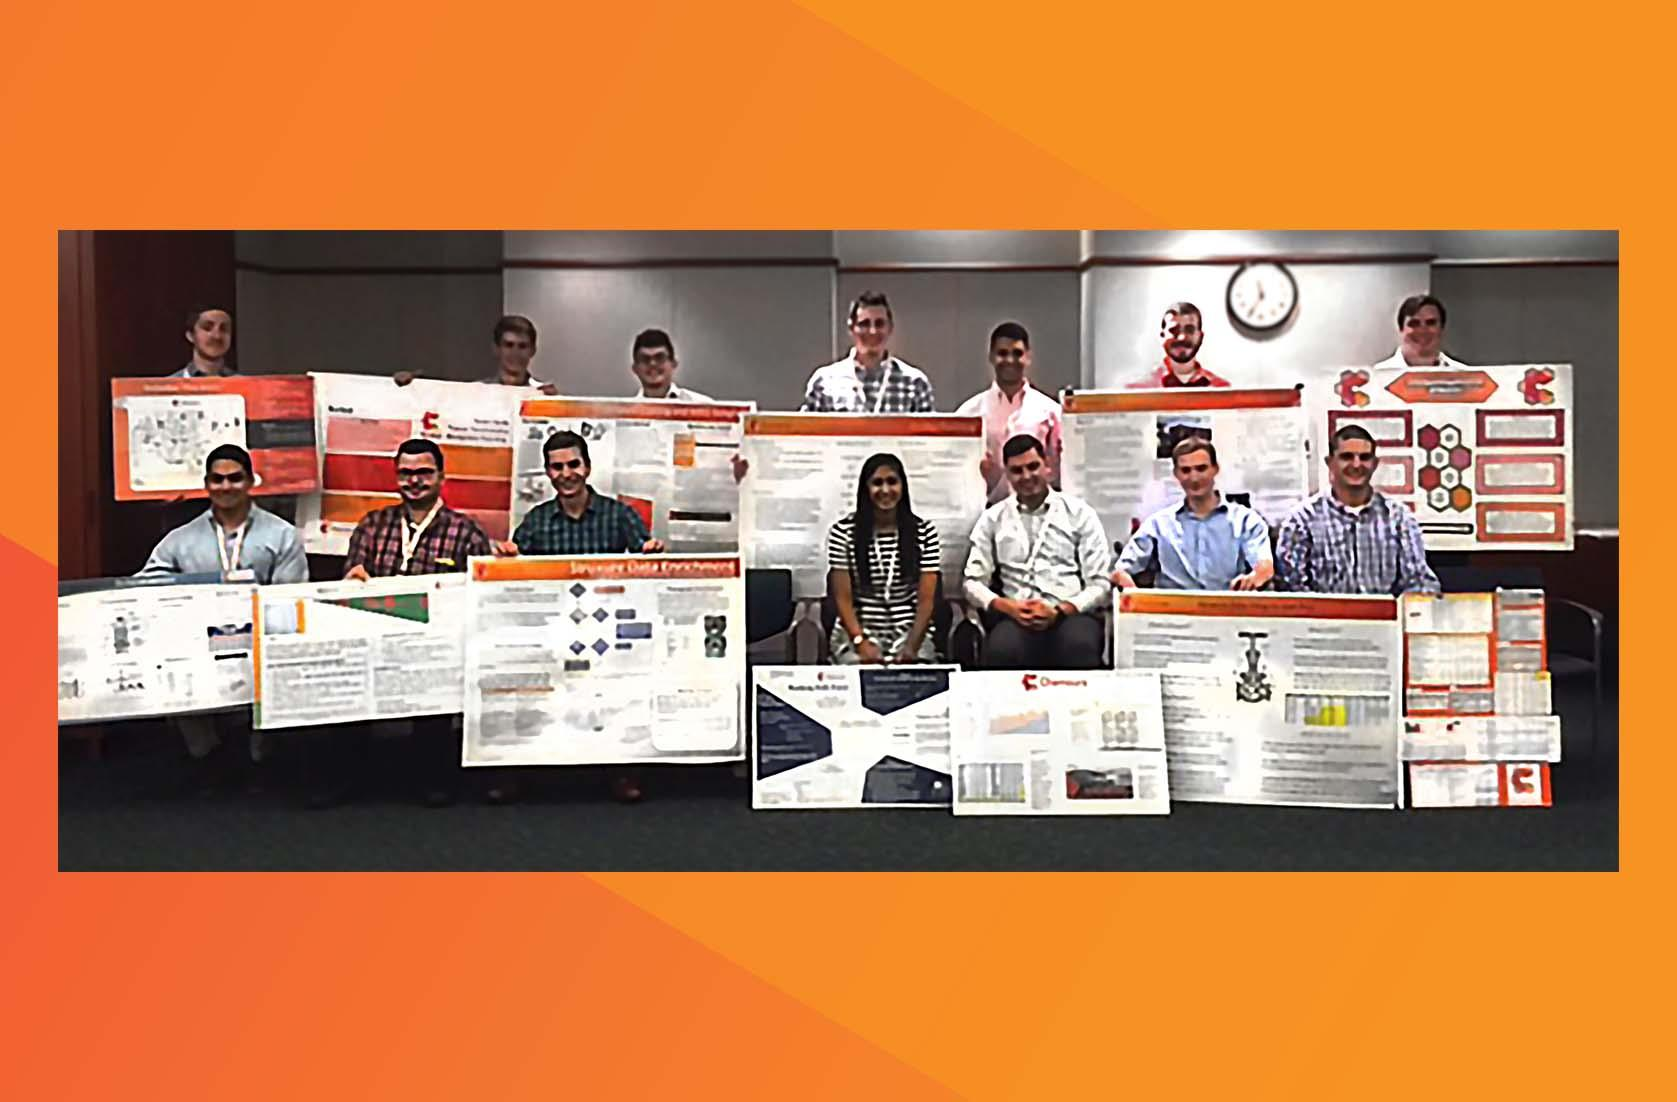 summer interns participate in hands-on activities and deliver final presentations